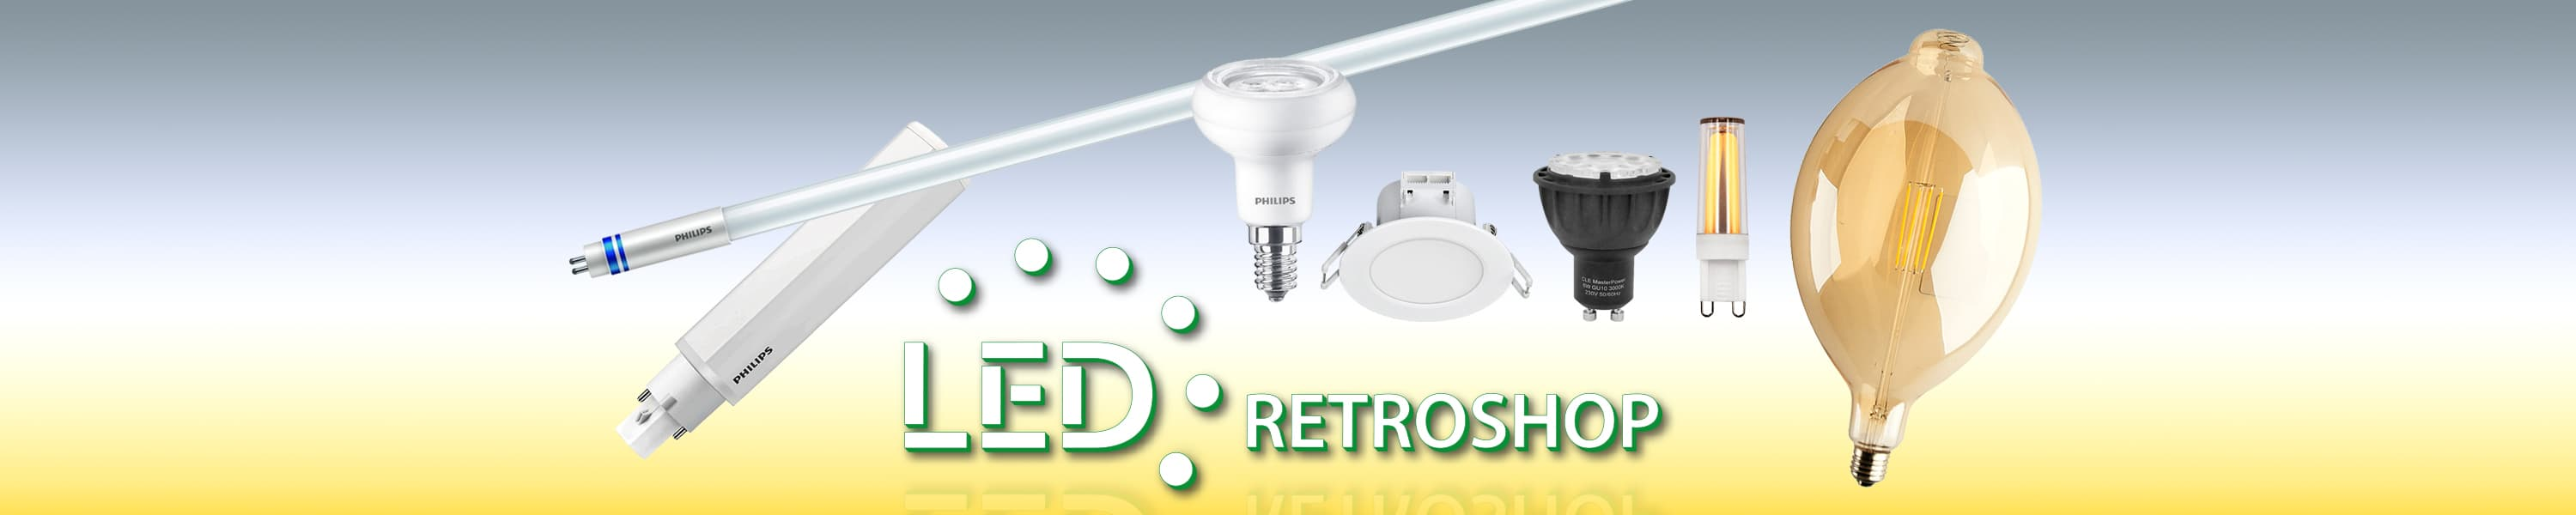 LED-Retroshop.de